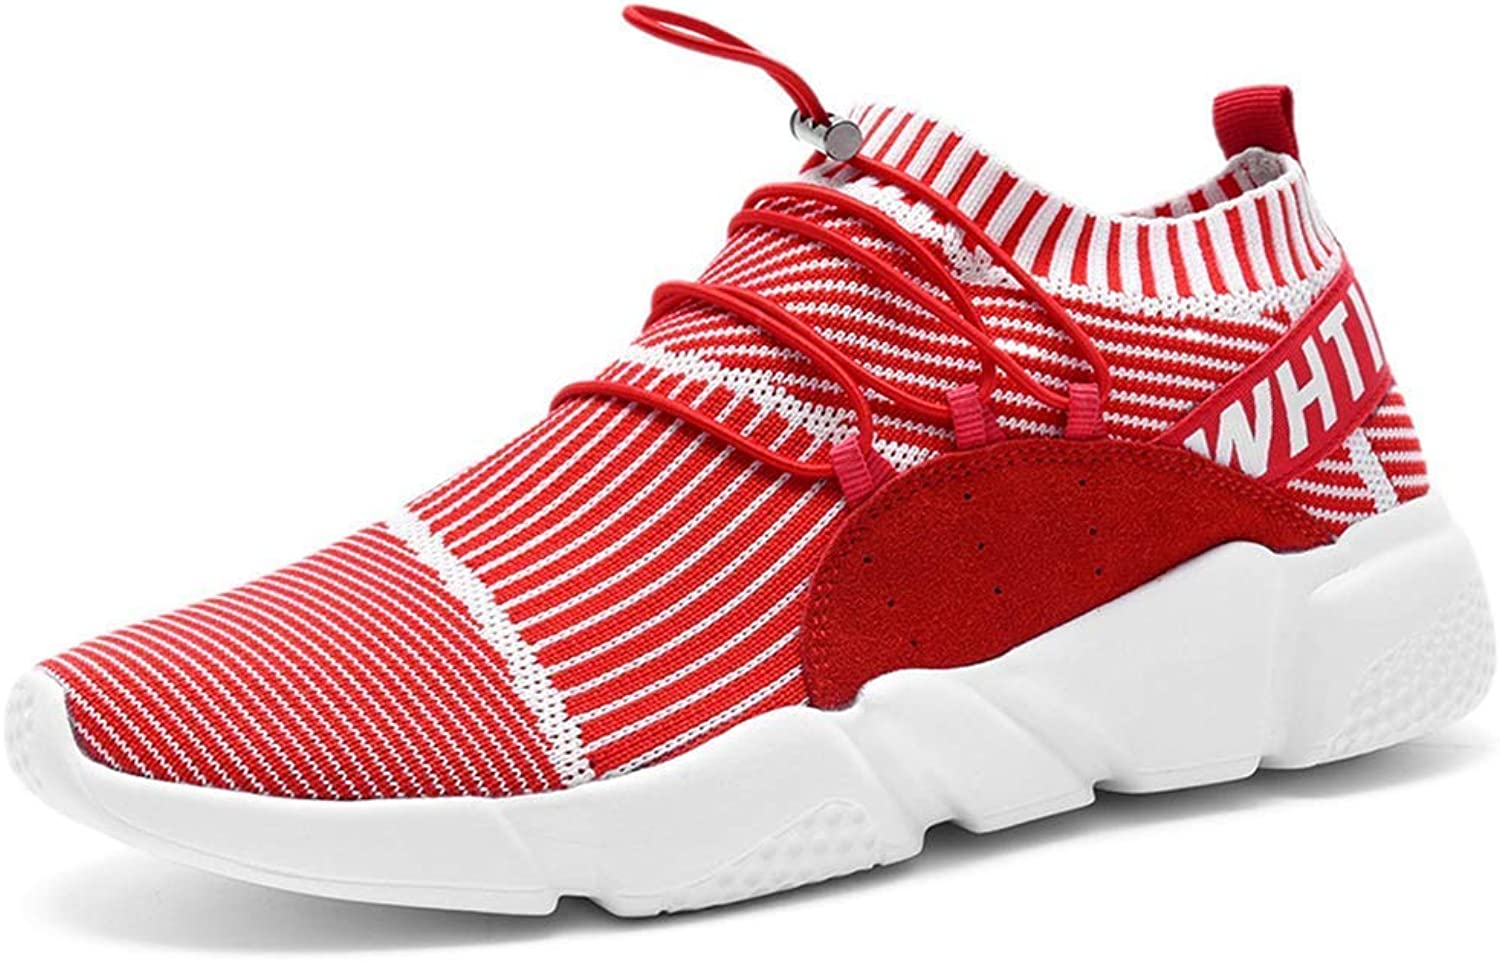 ZHRUI Men Sneakers Comfortable Breathable Trainers for Male Flat Casual shoes (color   Red, Size   6UK=40 EU)